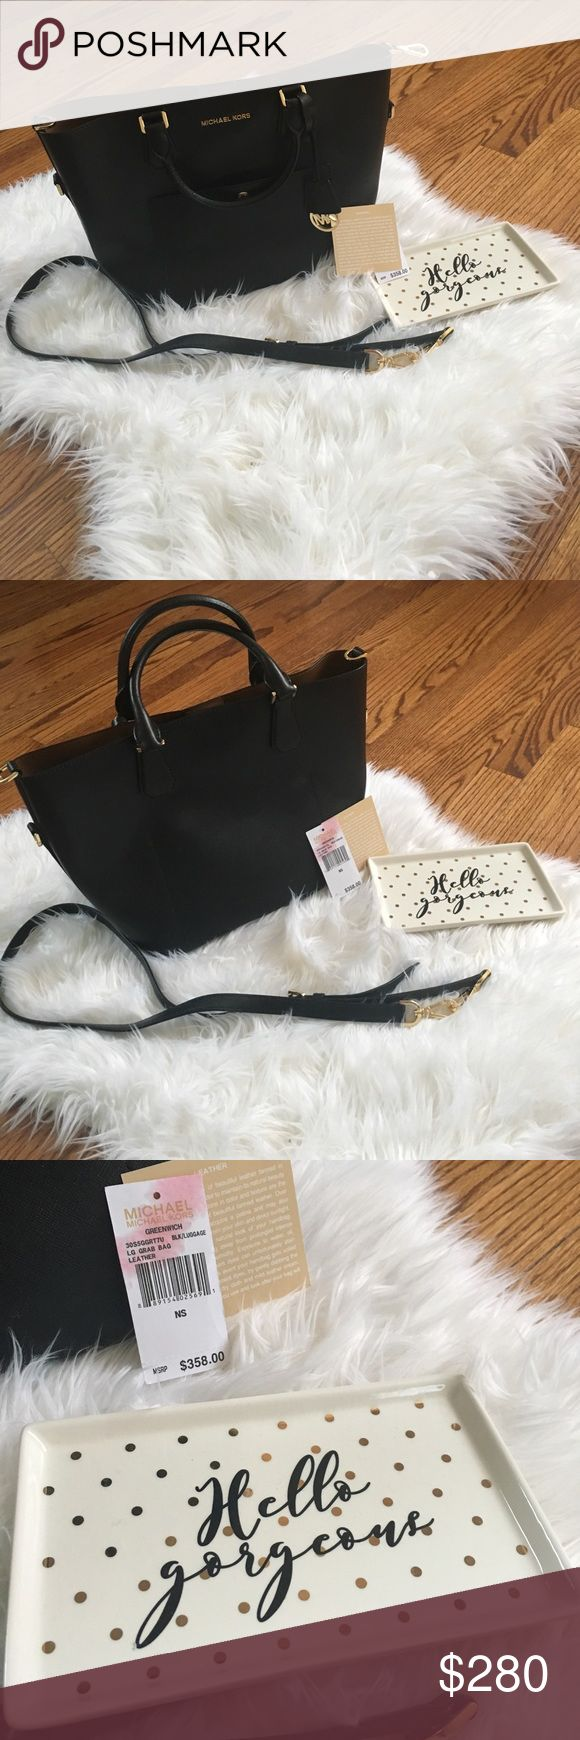 MKORS BLK/LUGGAGE LG LEATHER BAG NWOT❤️ NWOT never wear I don't have the bag only what you see in the picture bag and shoulder strap. Invest in an American staple with this Greenwich tote from  Michael Kors. Loaded with gold-toned branding and Saffiano leather, it makes a loud yet refined statement. Coupled with a variety of pockets, it merges practicality and celebrated style. (Height 25.5cm, length 33cm, depth 17cm).Gold-toned hardware, front pocket, internal touch and zipped pocket…